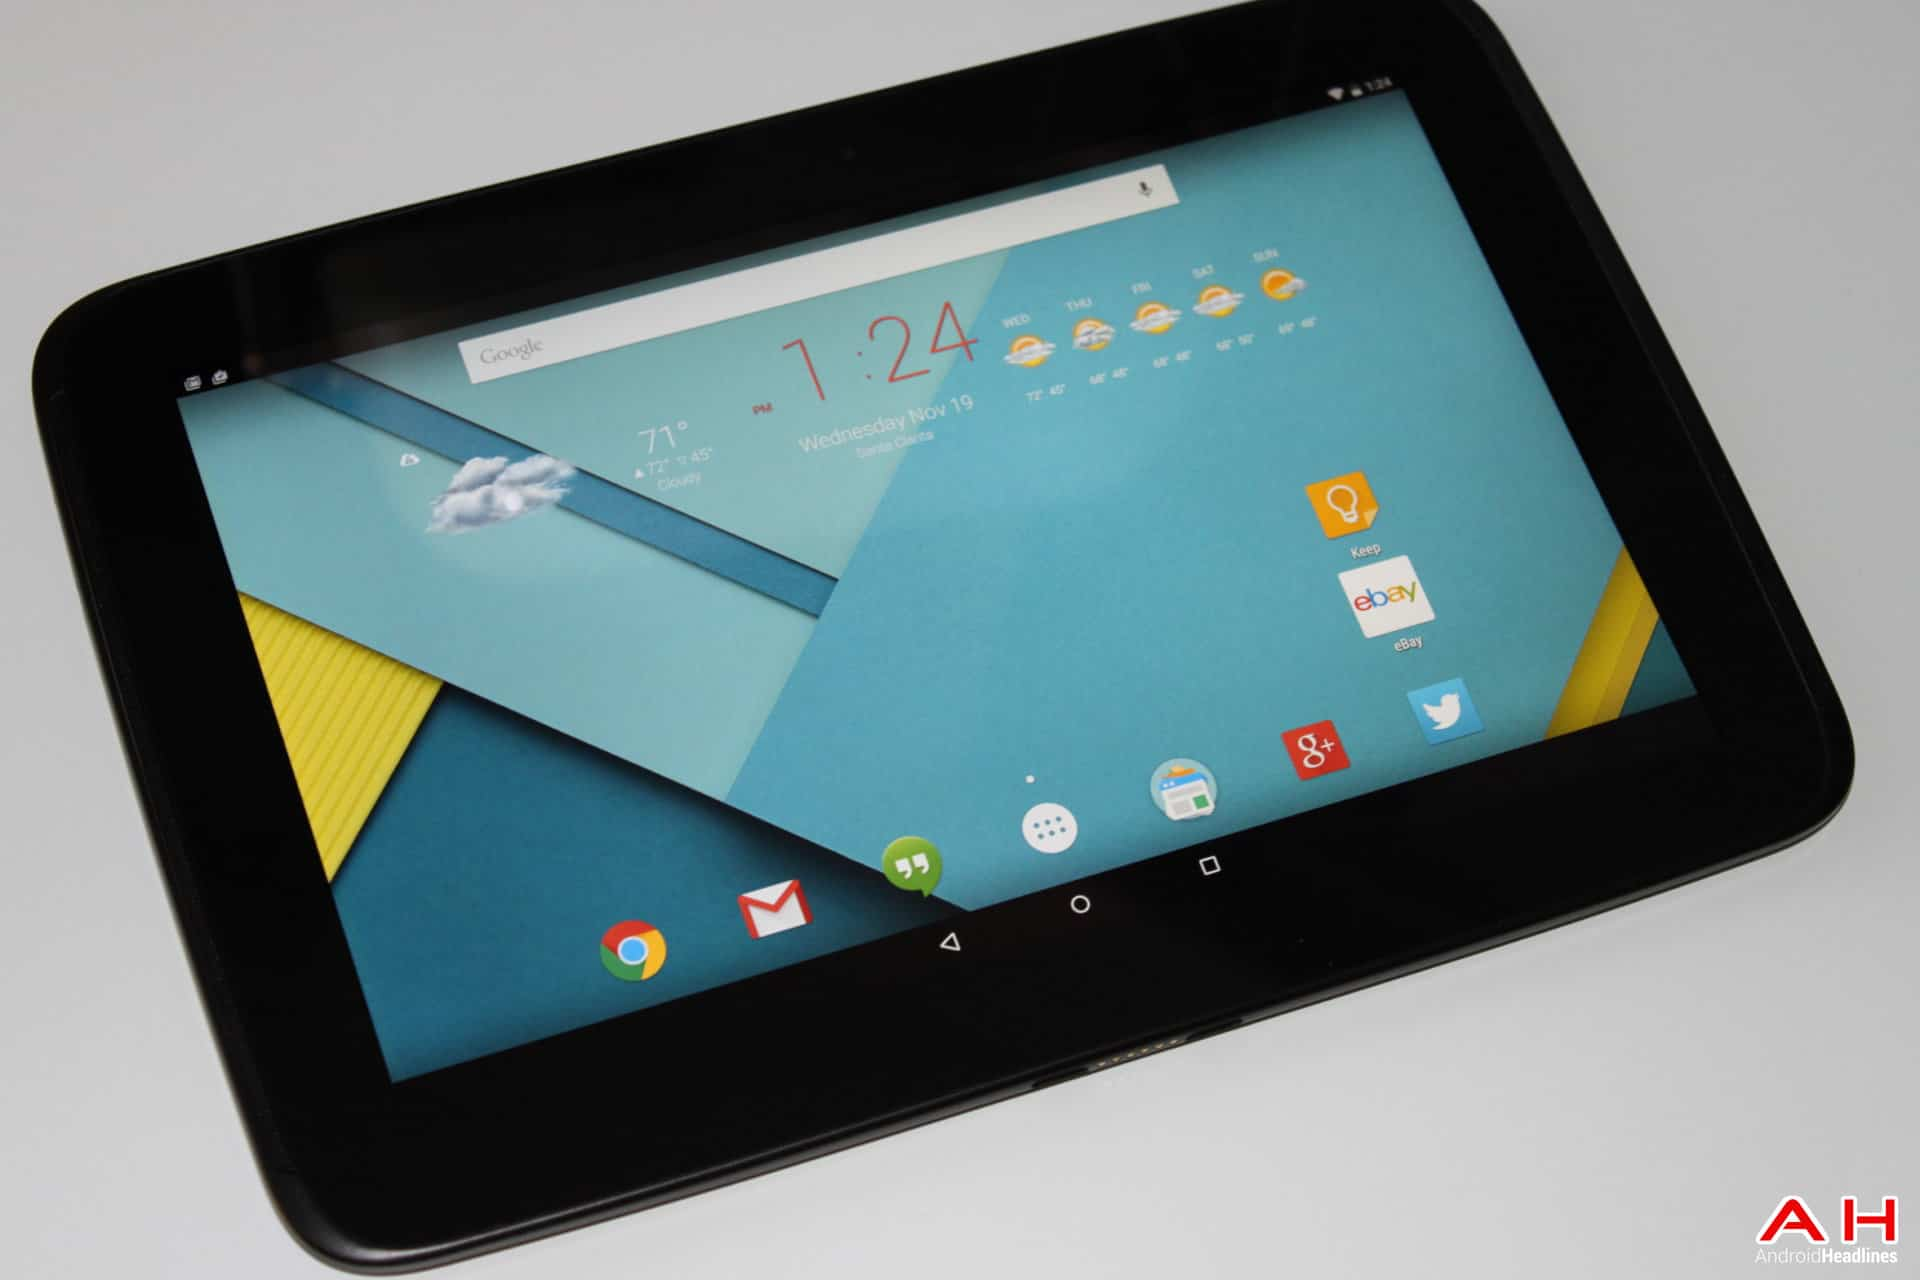 Android 5 0 1 lollipop and 5 0 2 update for nexus devices android - Android 5 0 Lollipop Ota Rolling Out To Nexus 10 Owners